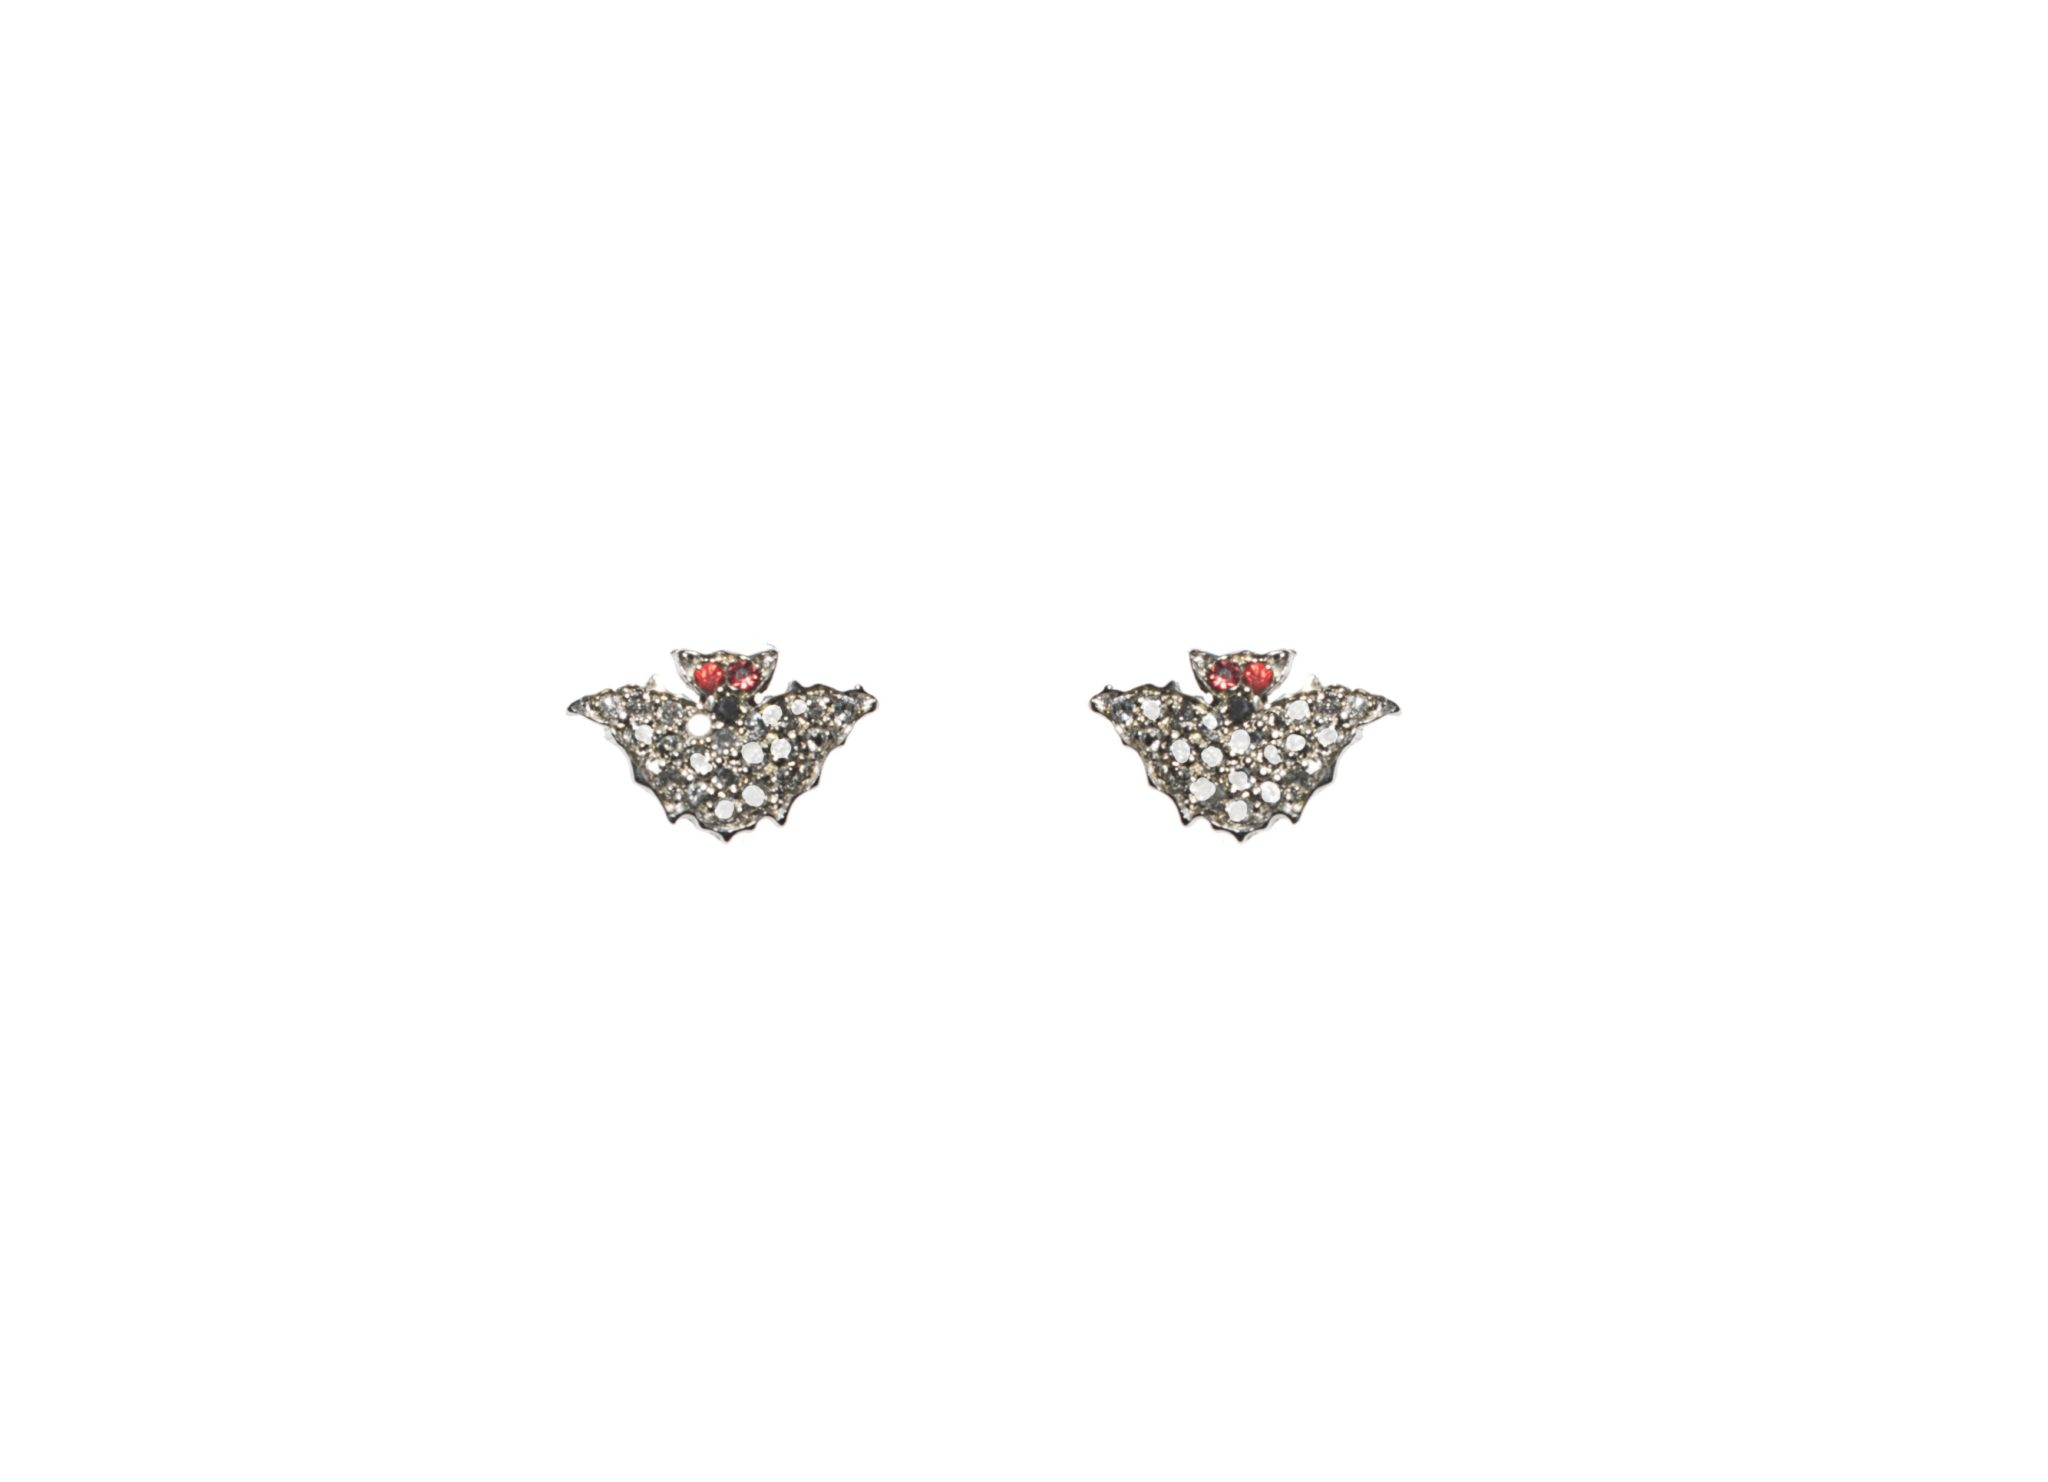 Mini bat gold earrings with pavé grey diamonds and red sapphires